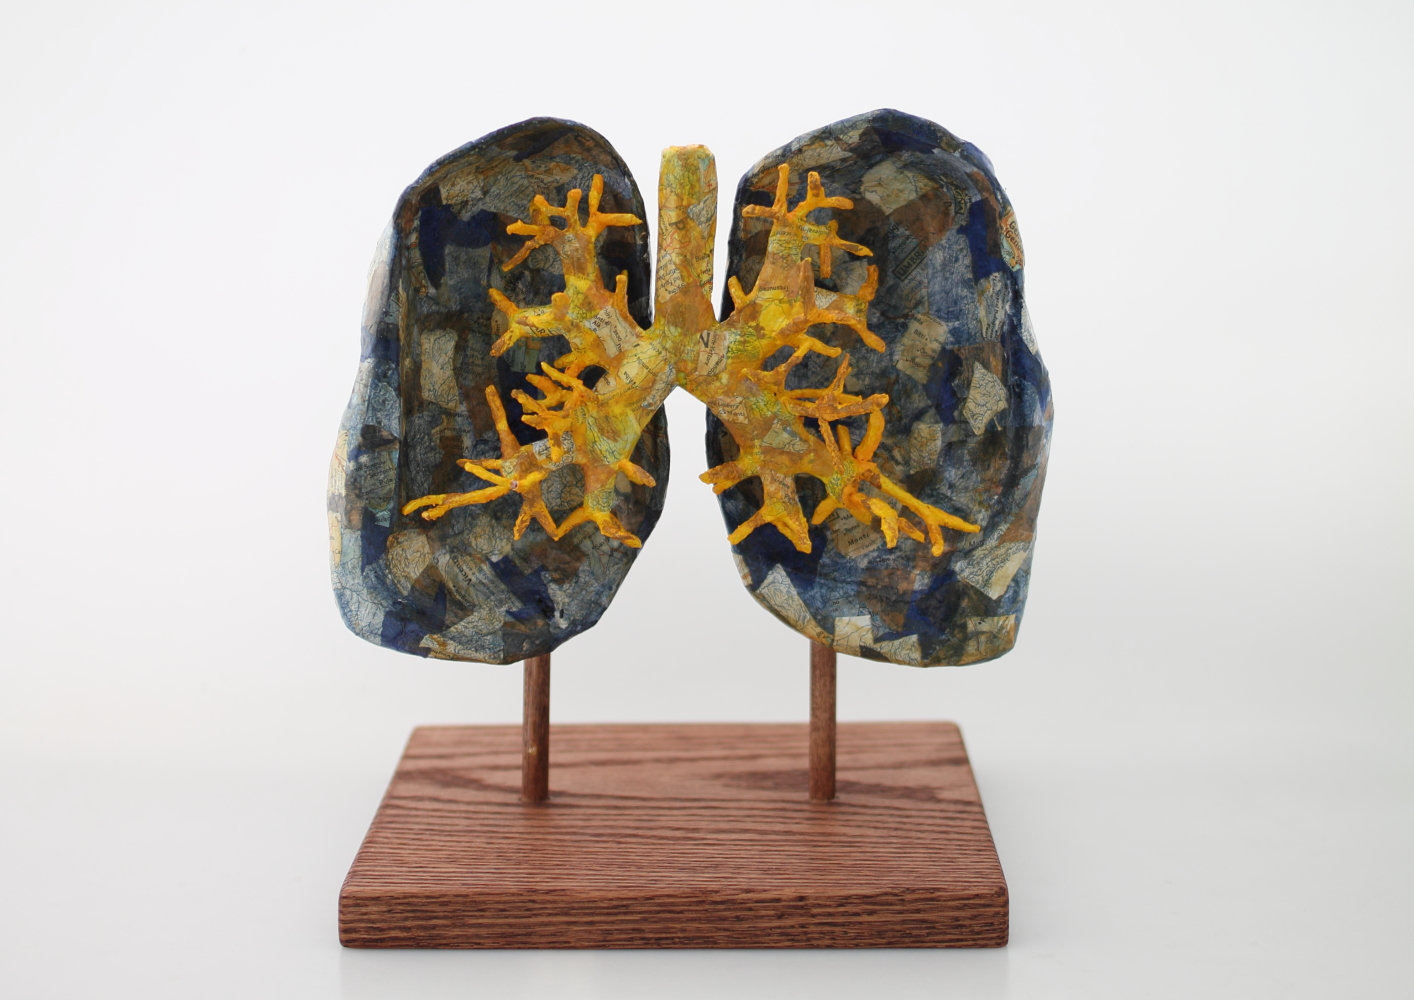 Lungs  Papier maché and wood  8 x 7 x 9 inches  2017